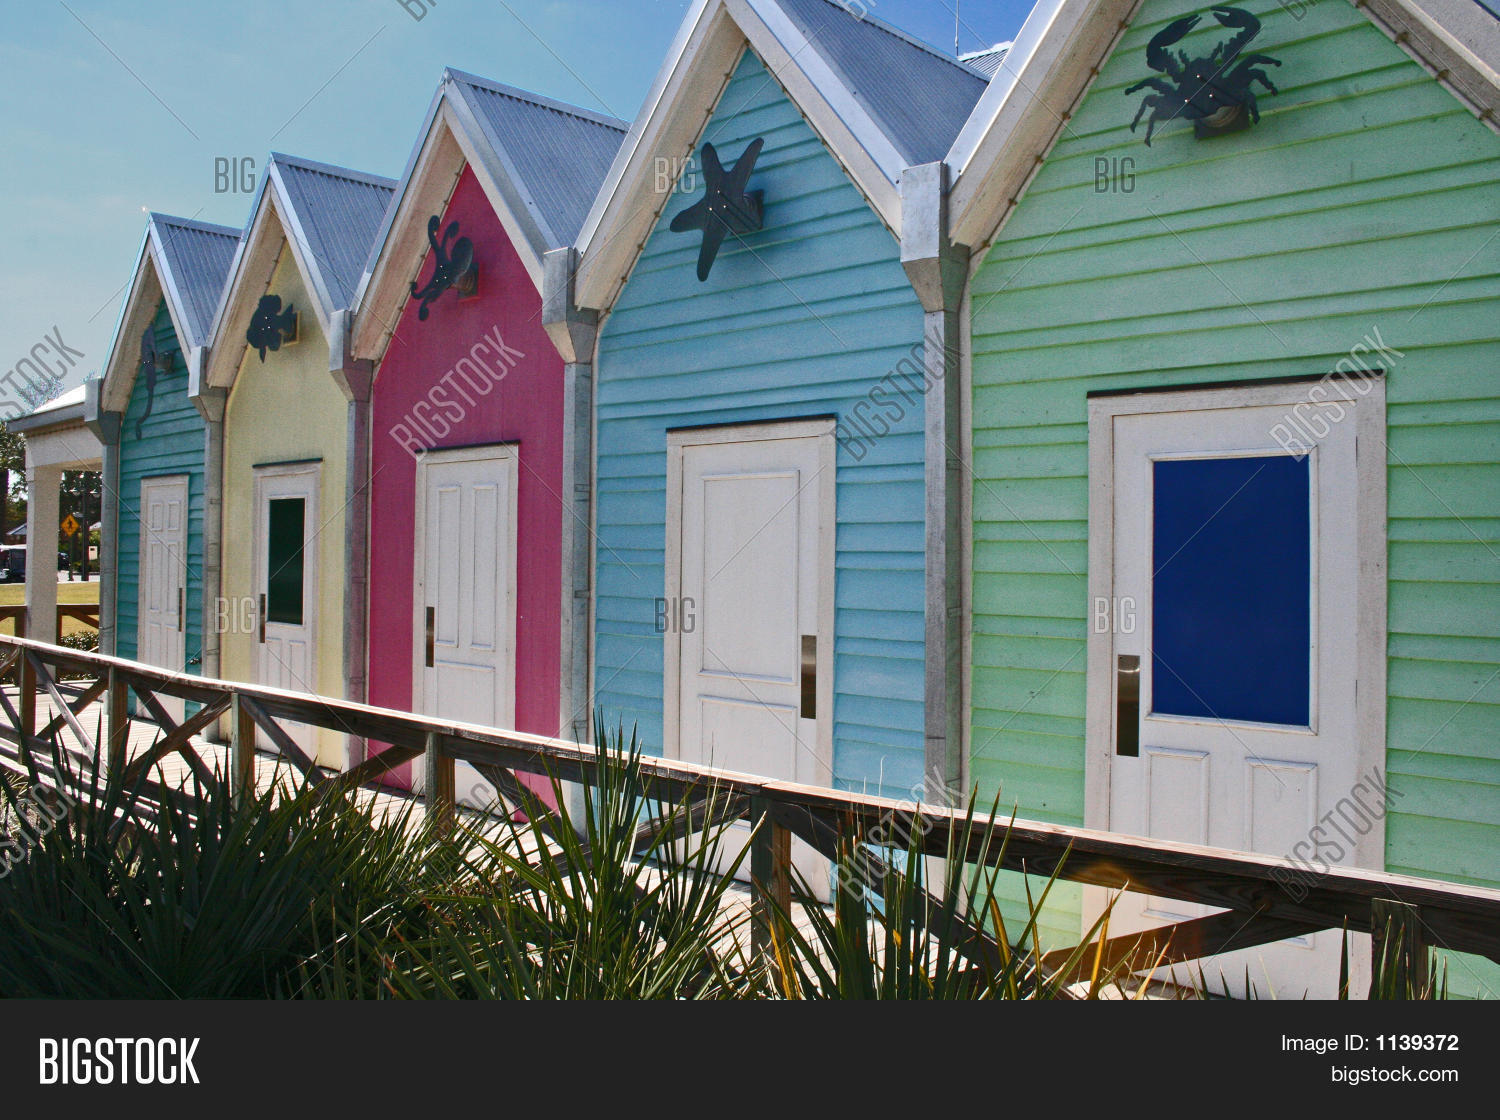 Pictures of houses on the beach - Brightly Colored Beach Houses All In A Row